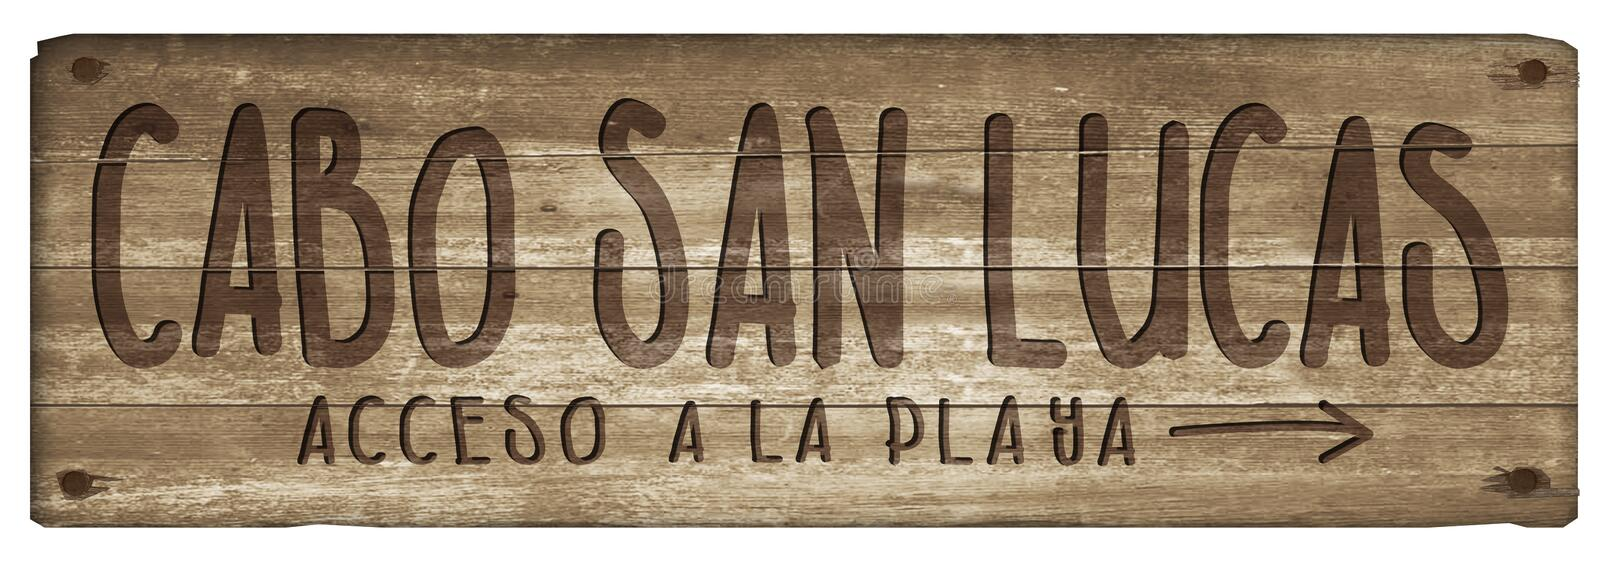 Cabo San Lucas Mexico Beach Sign Wood Vintage. Grunge old worn hand carved fun road trail engraved stock illustration